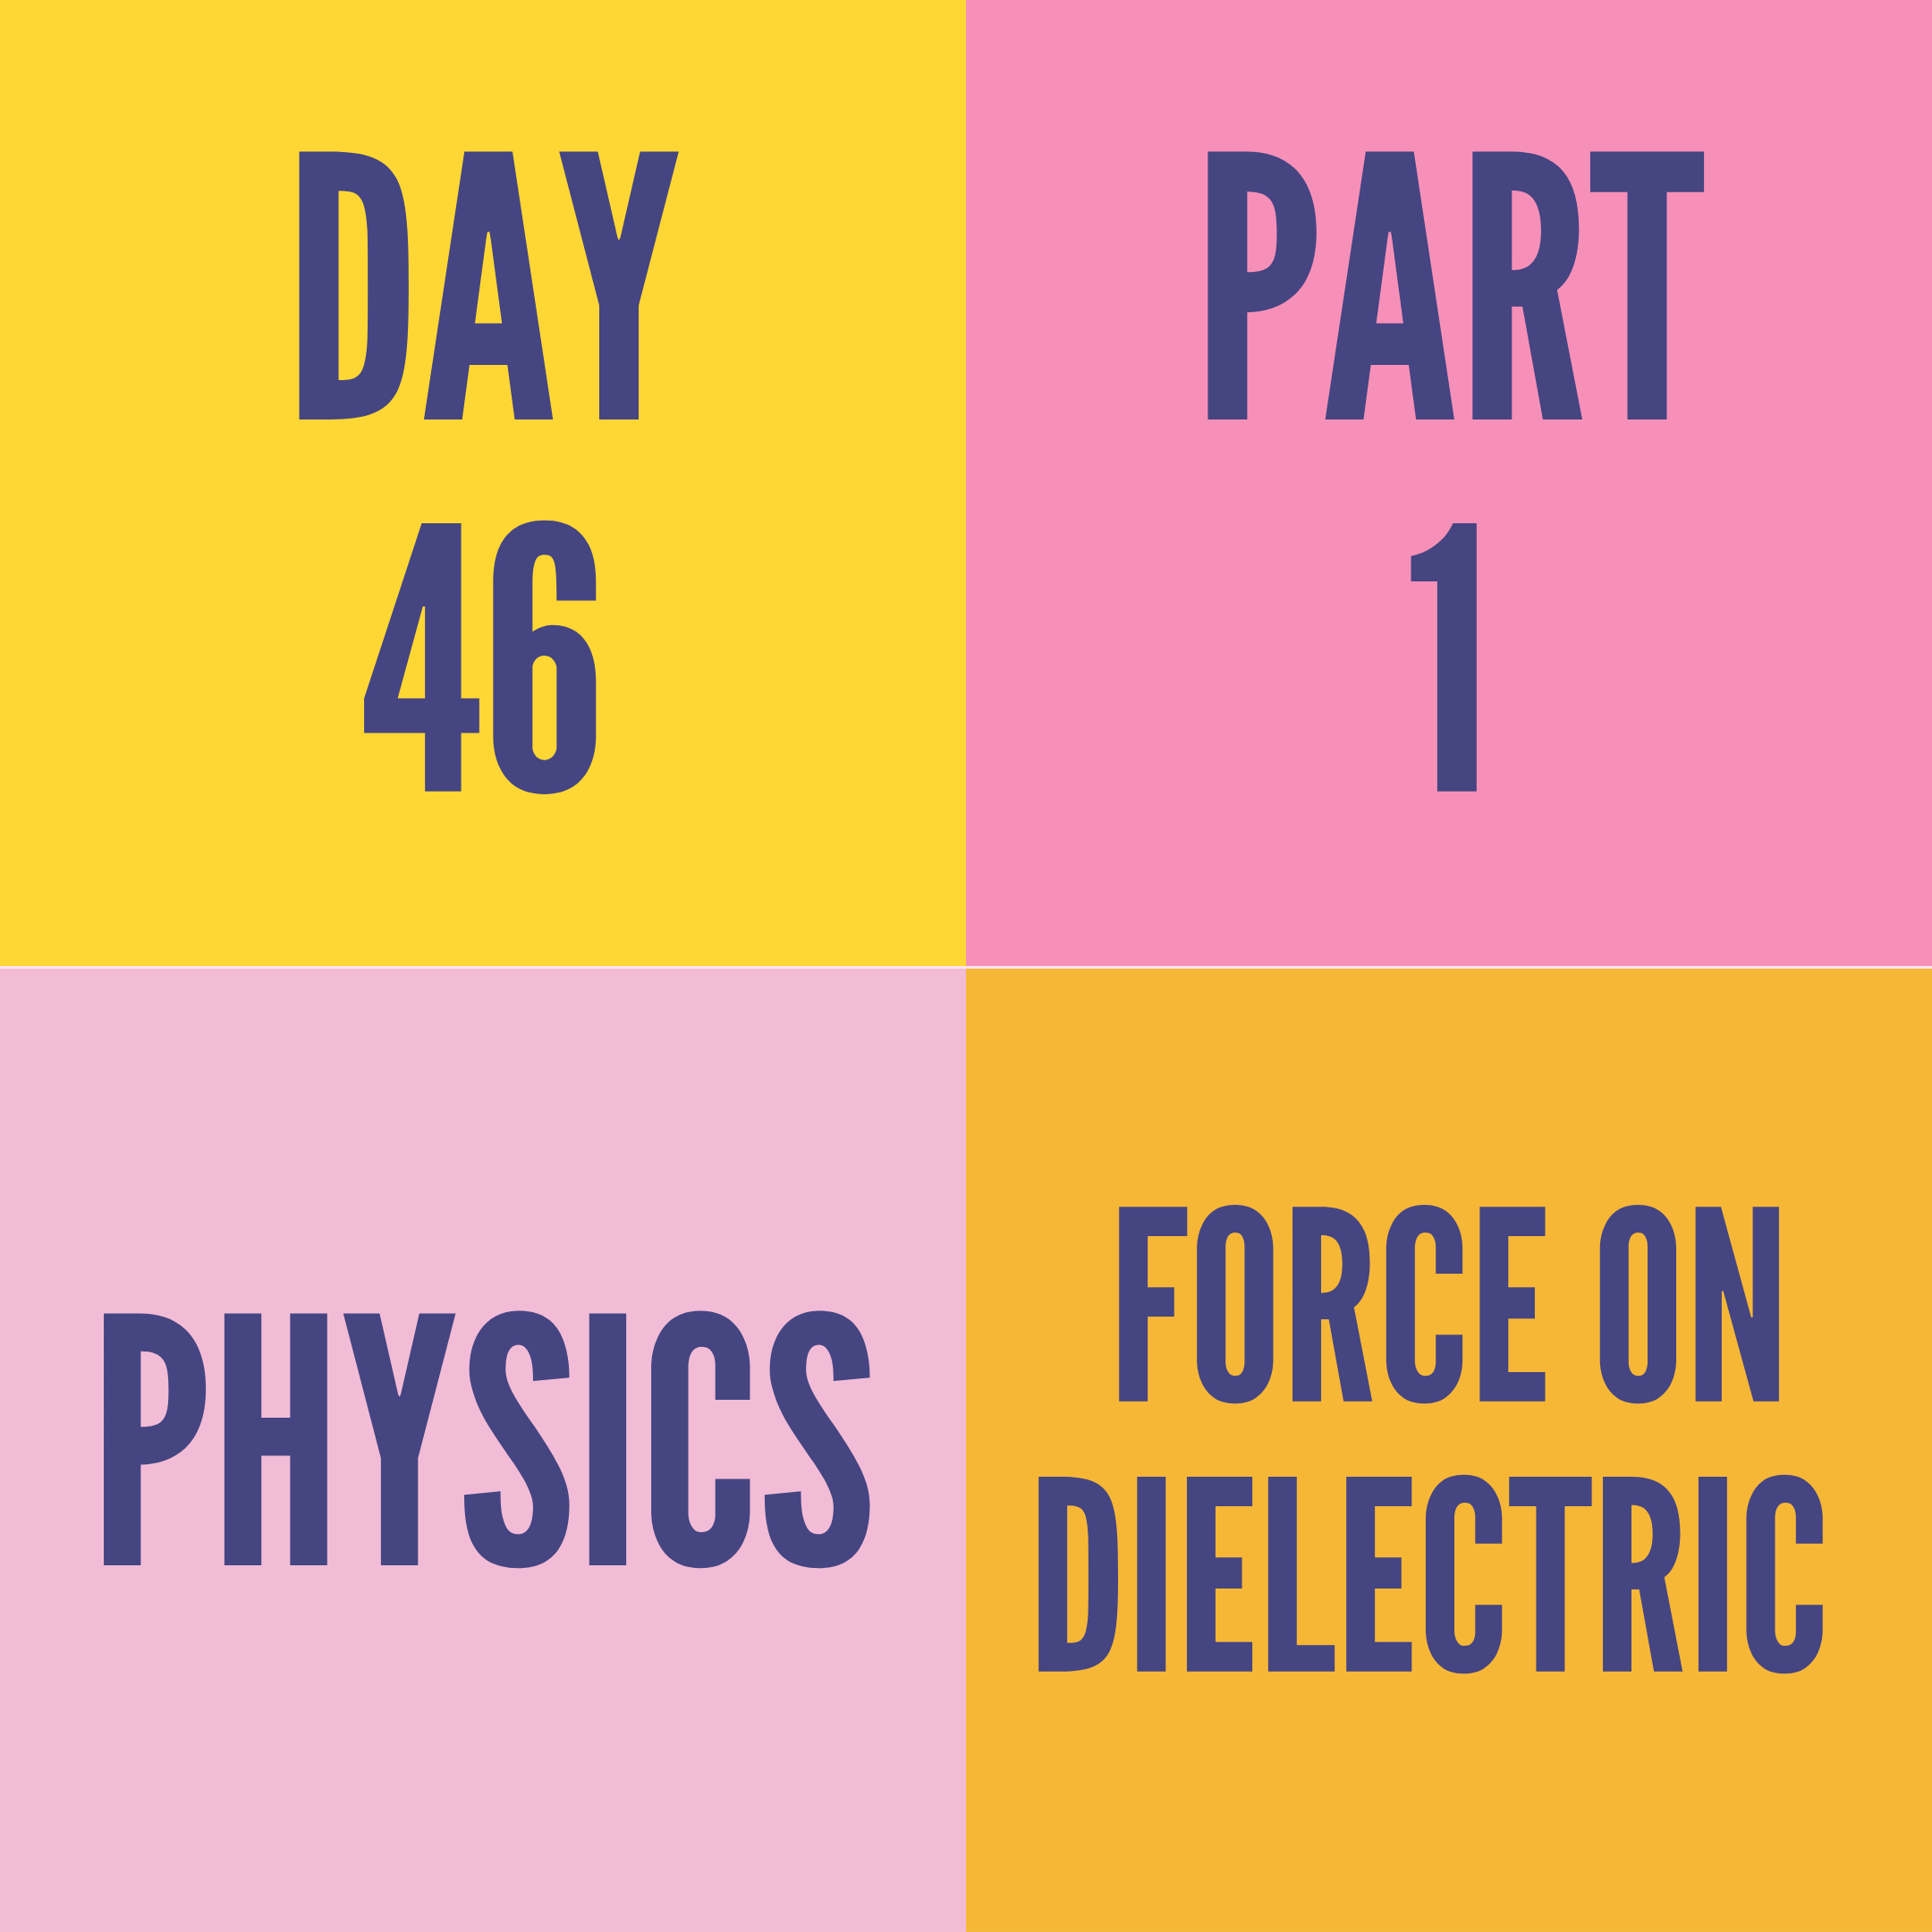 DAY-46 PART-1  FORCE ON DIELECTRIC